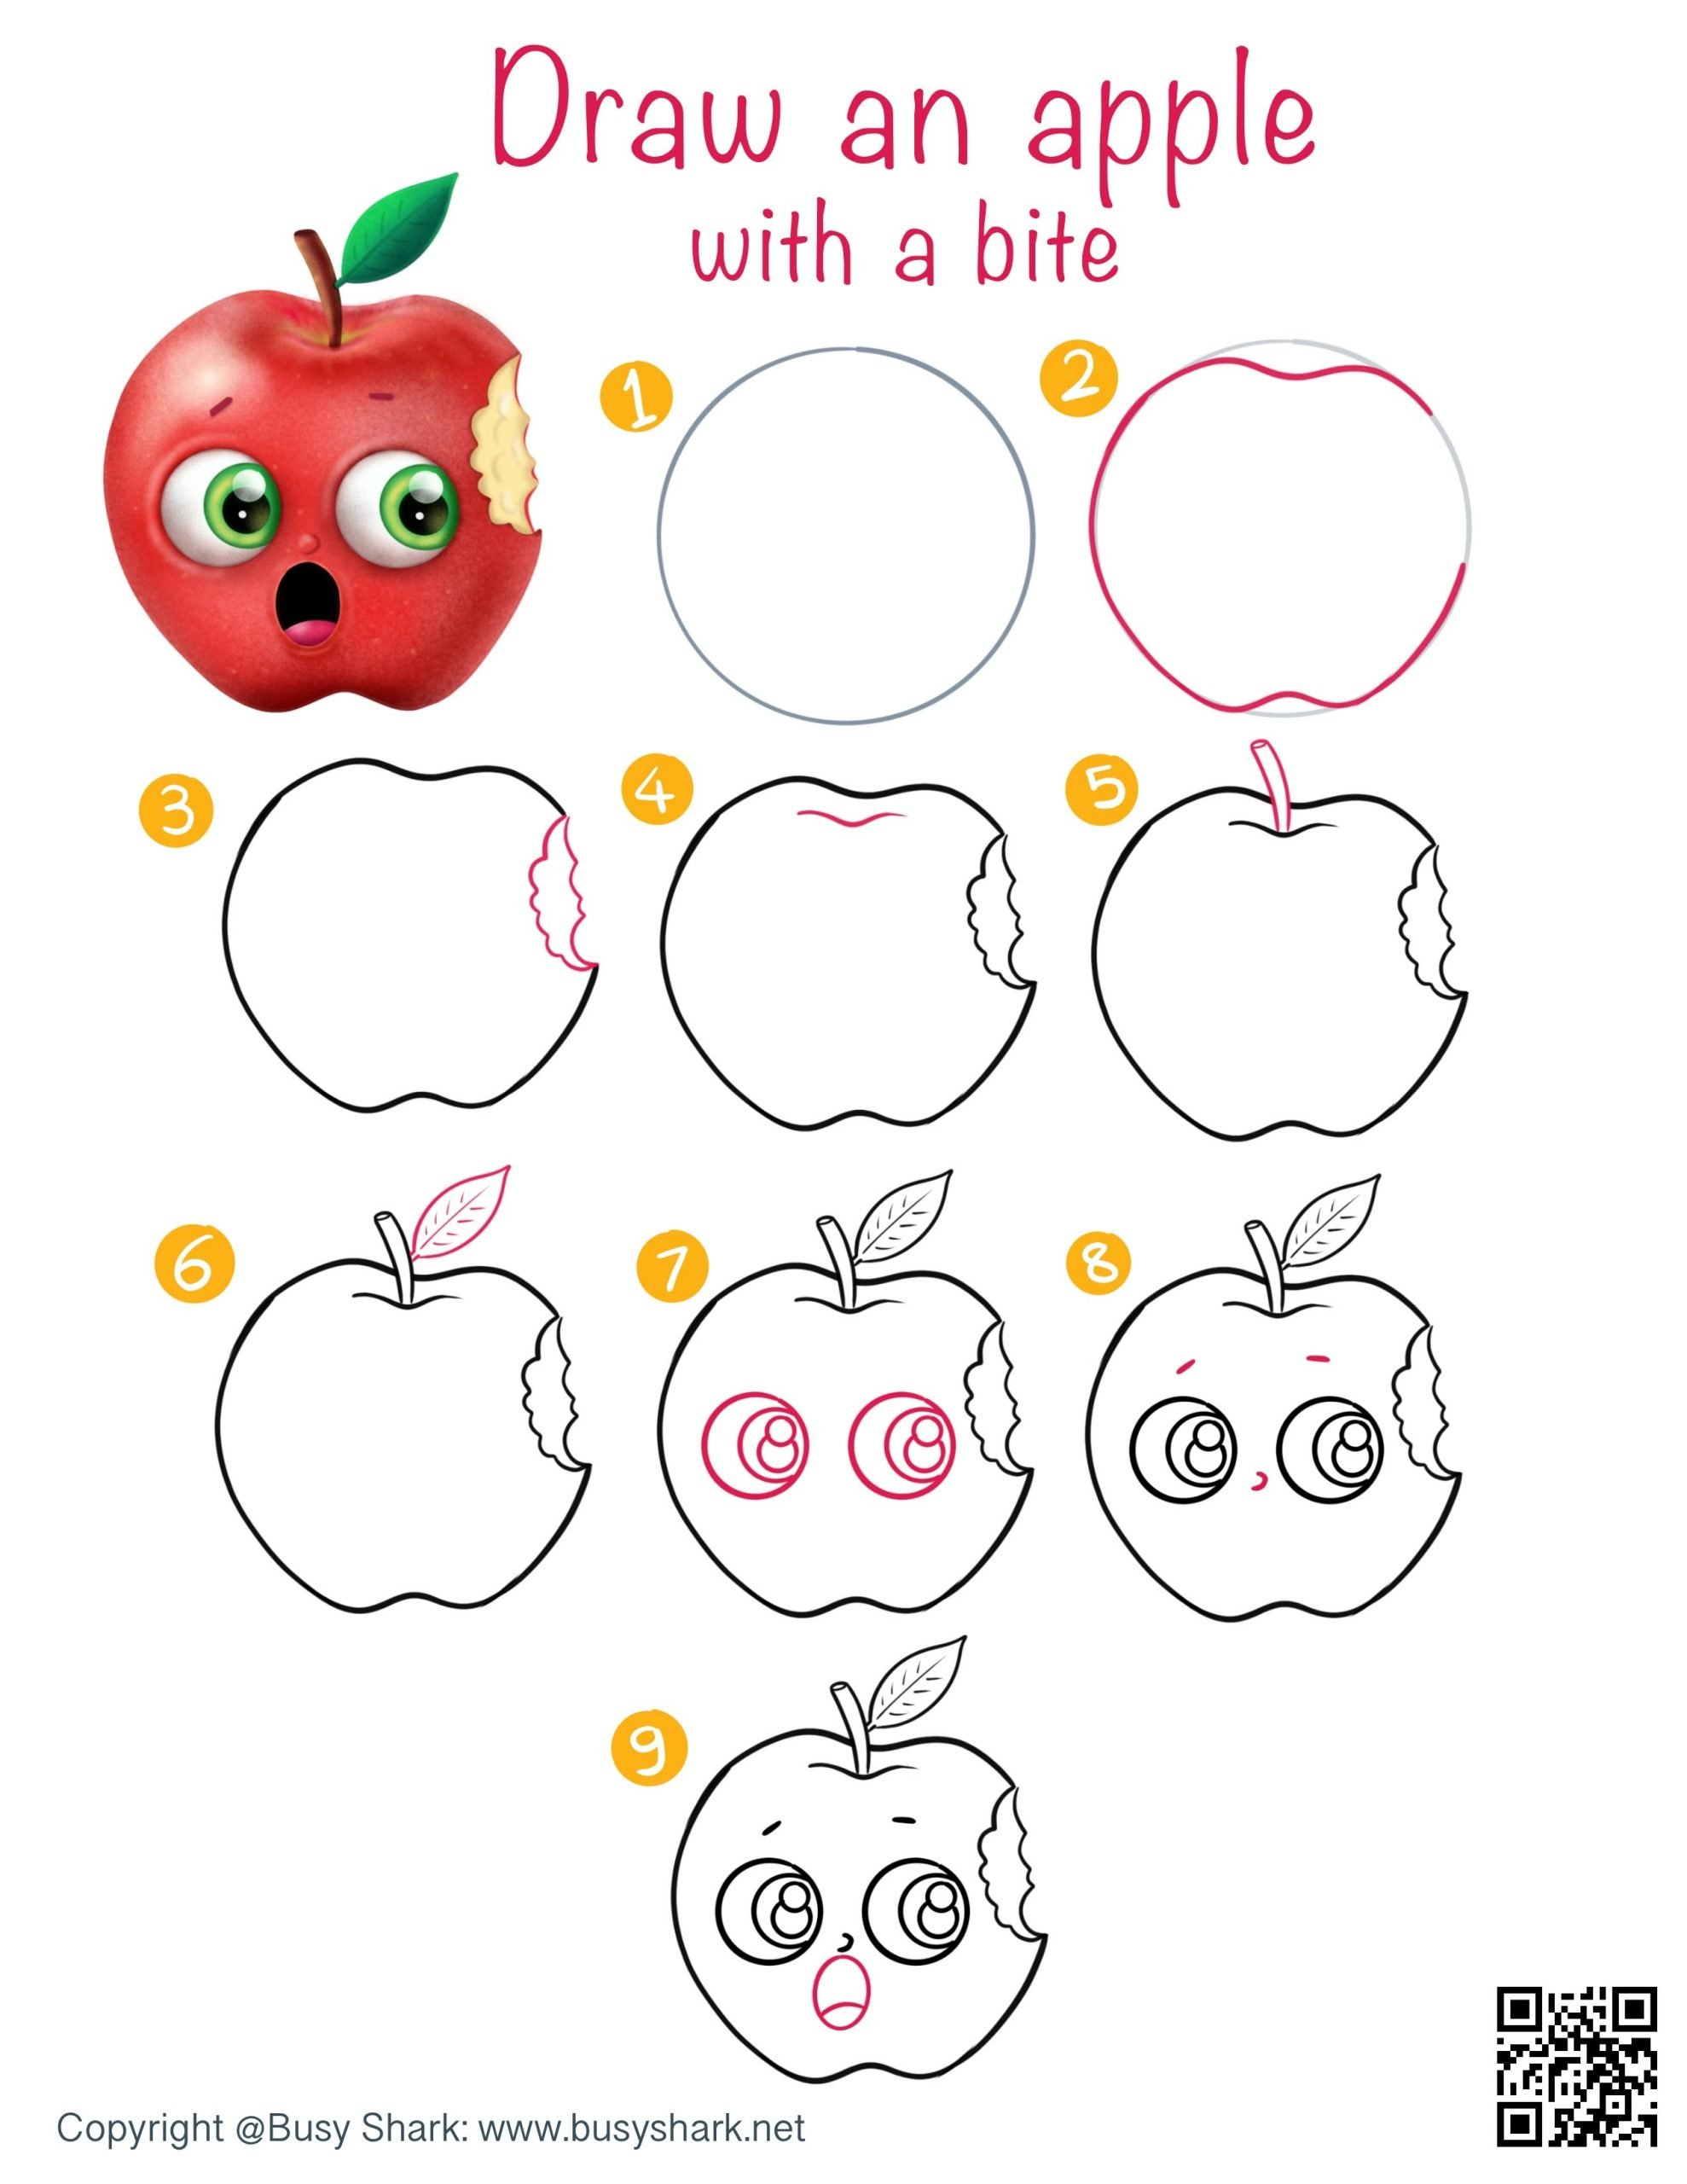 directed drawing step by step tutorial for an apple with a bite